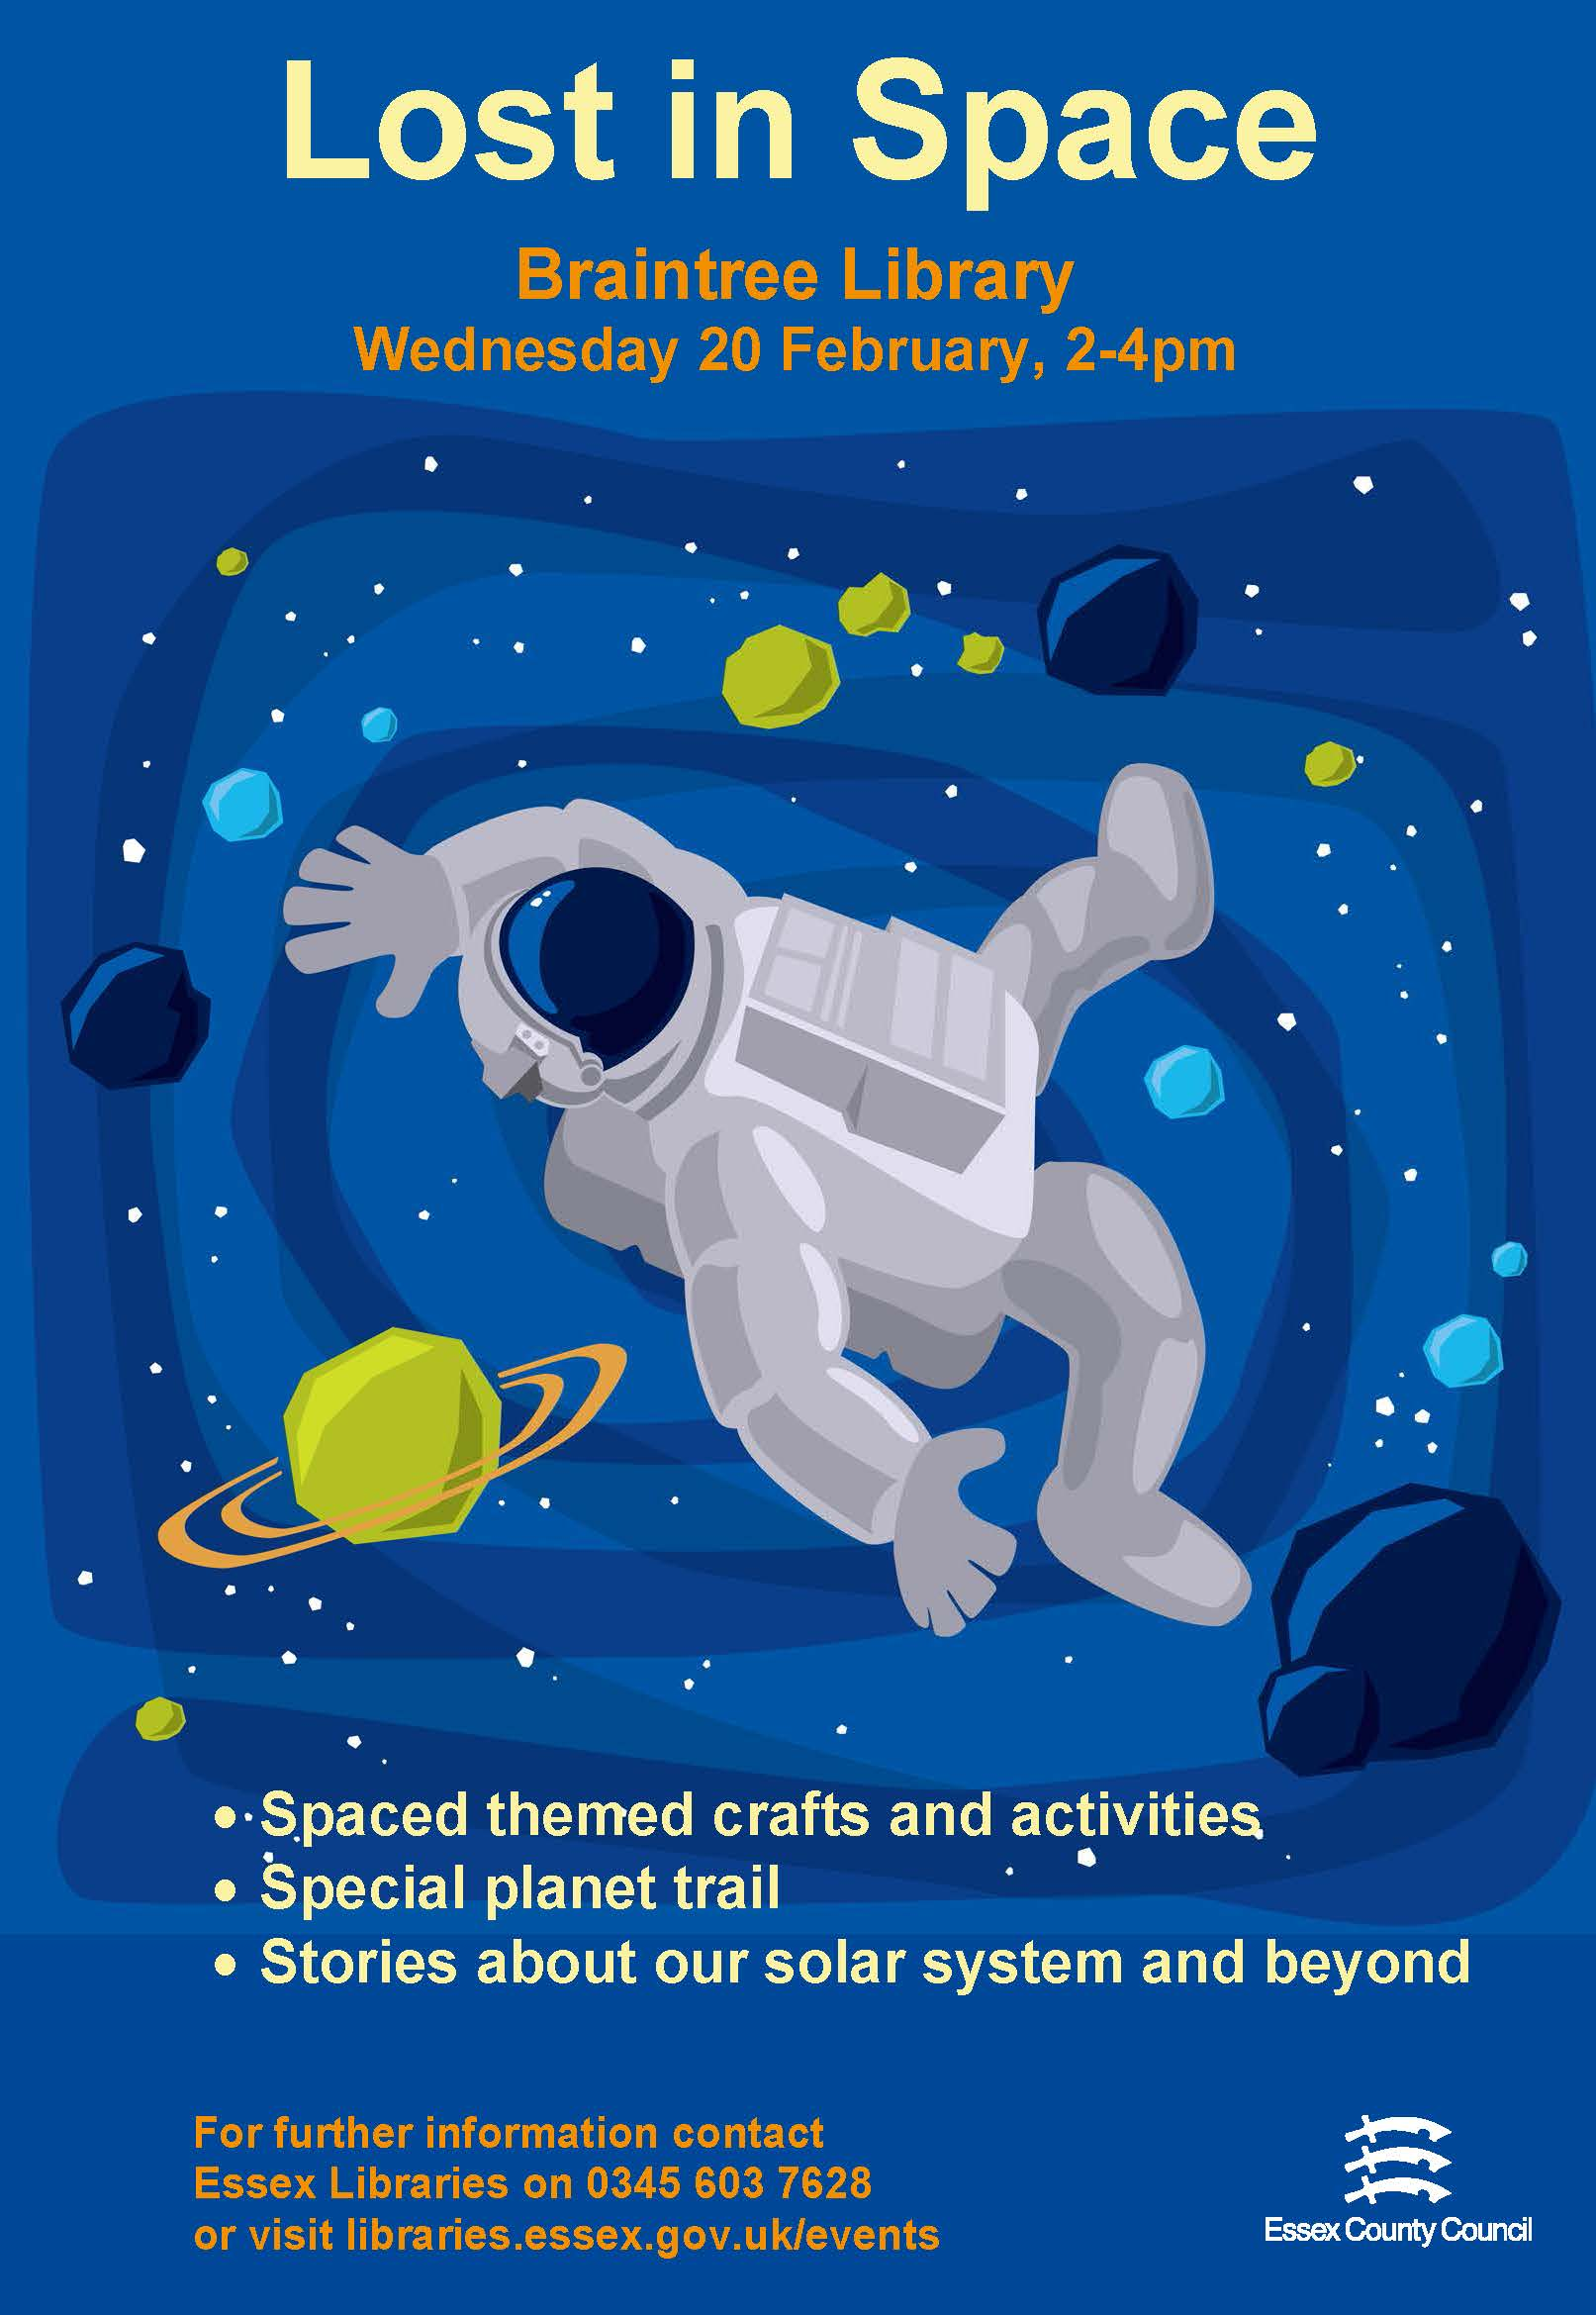 Lost in Space at Braintree Library